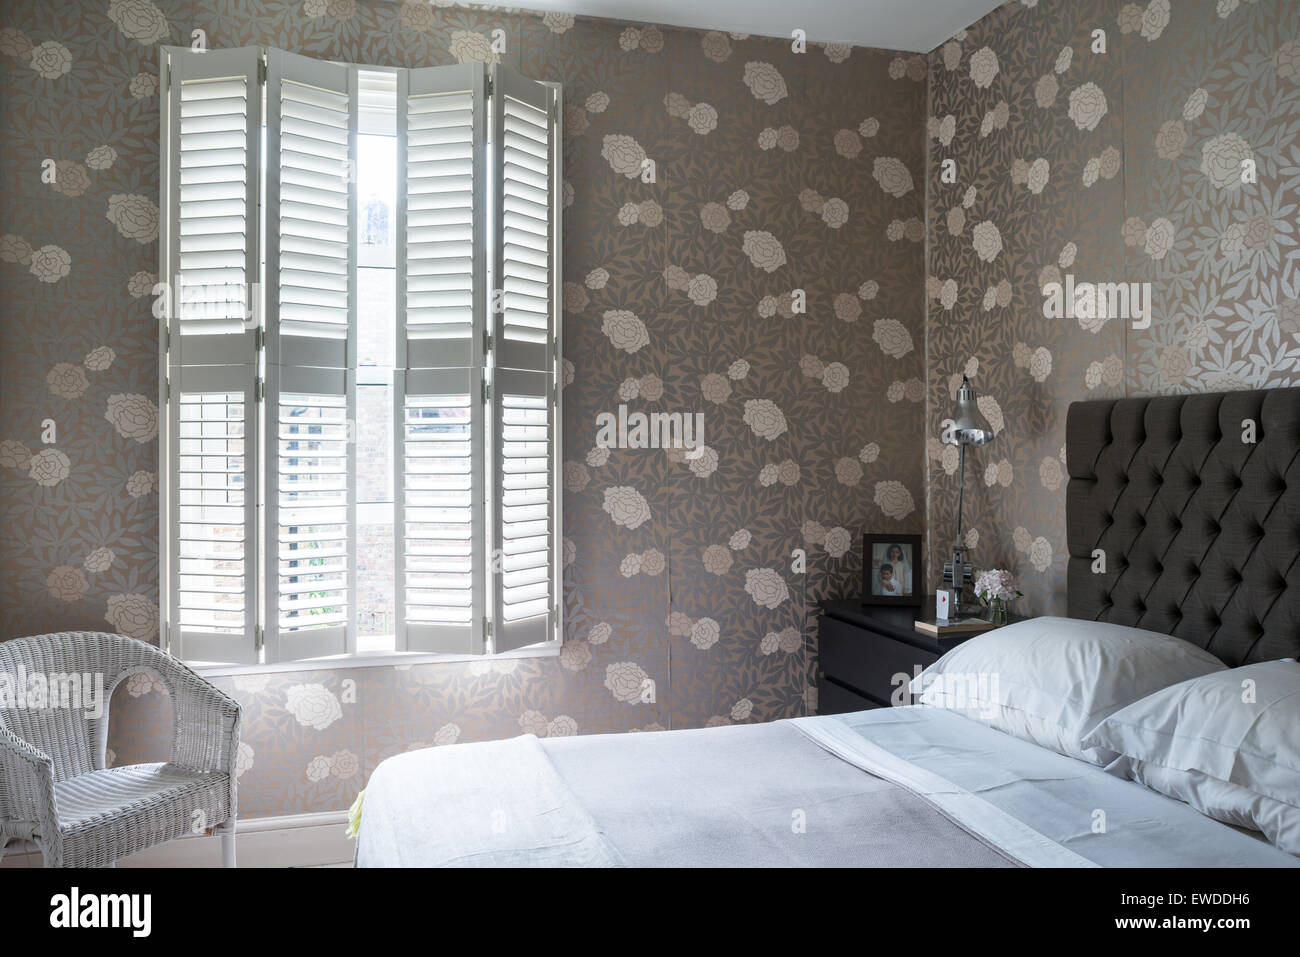 Osbourne U0026 Little Mettalic Floral Print Wallpaper In Bedroom With  Plantation Shutters And Chrome Anglepoise Lamps